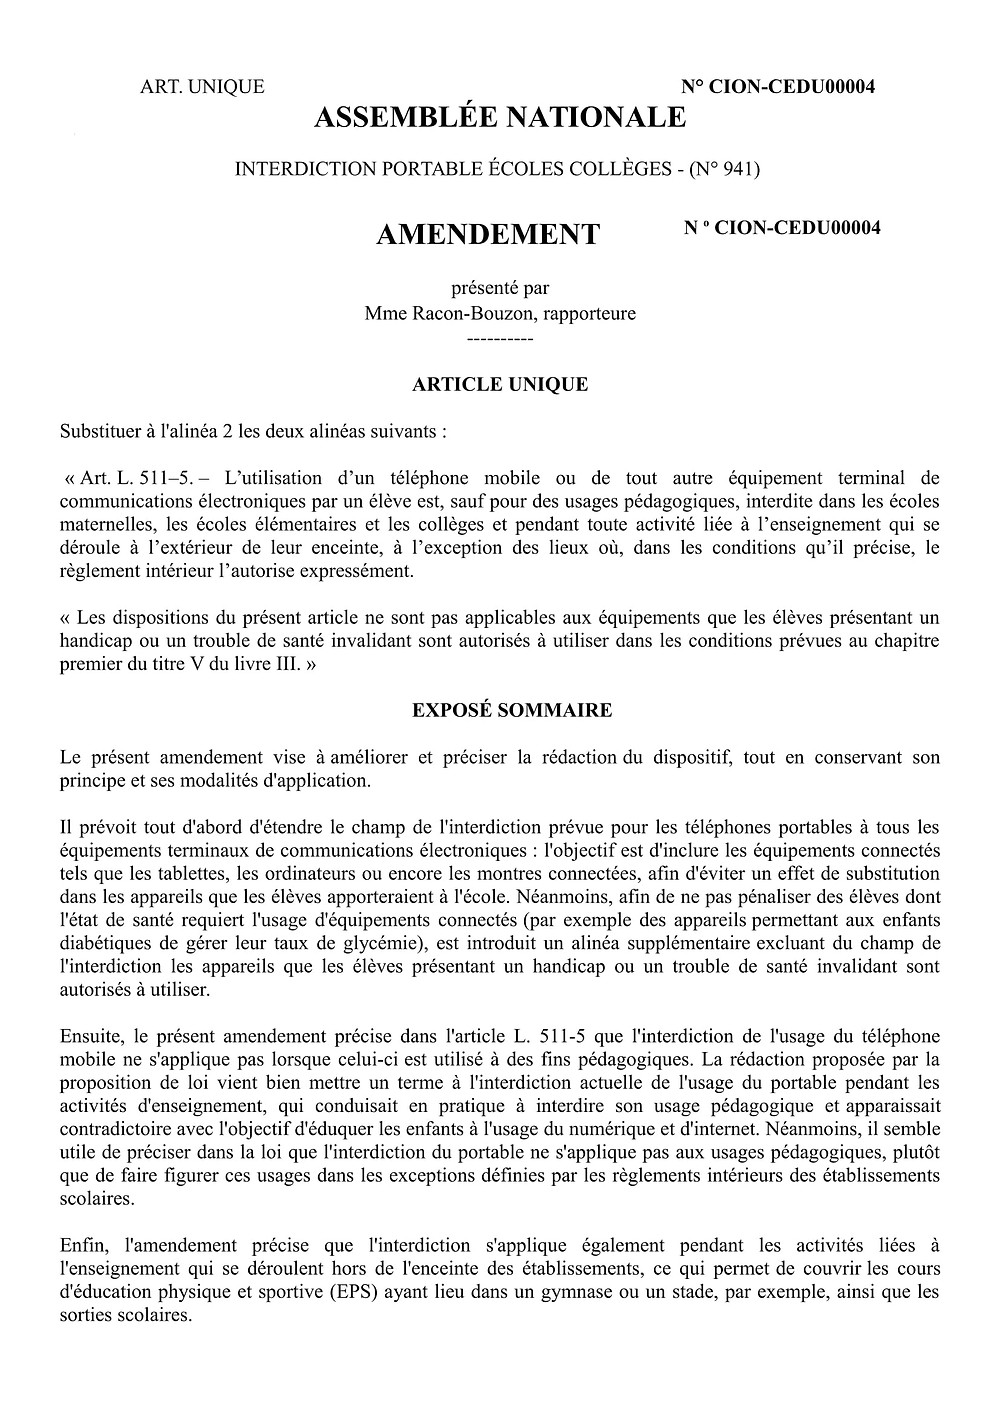 Amendement réécriture de l'article 1